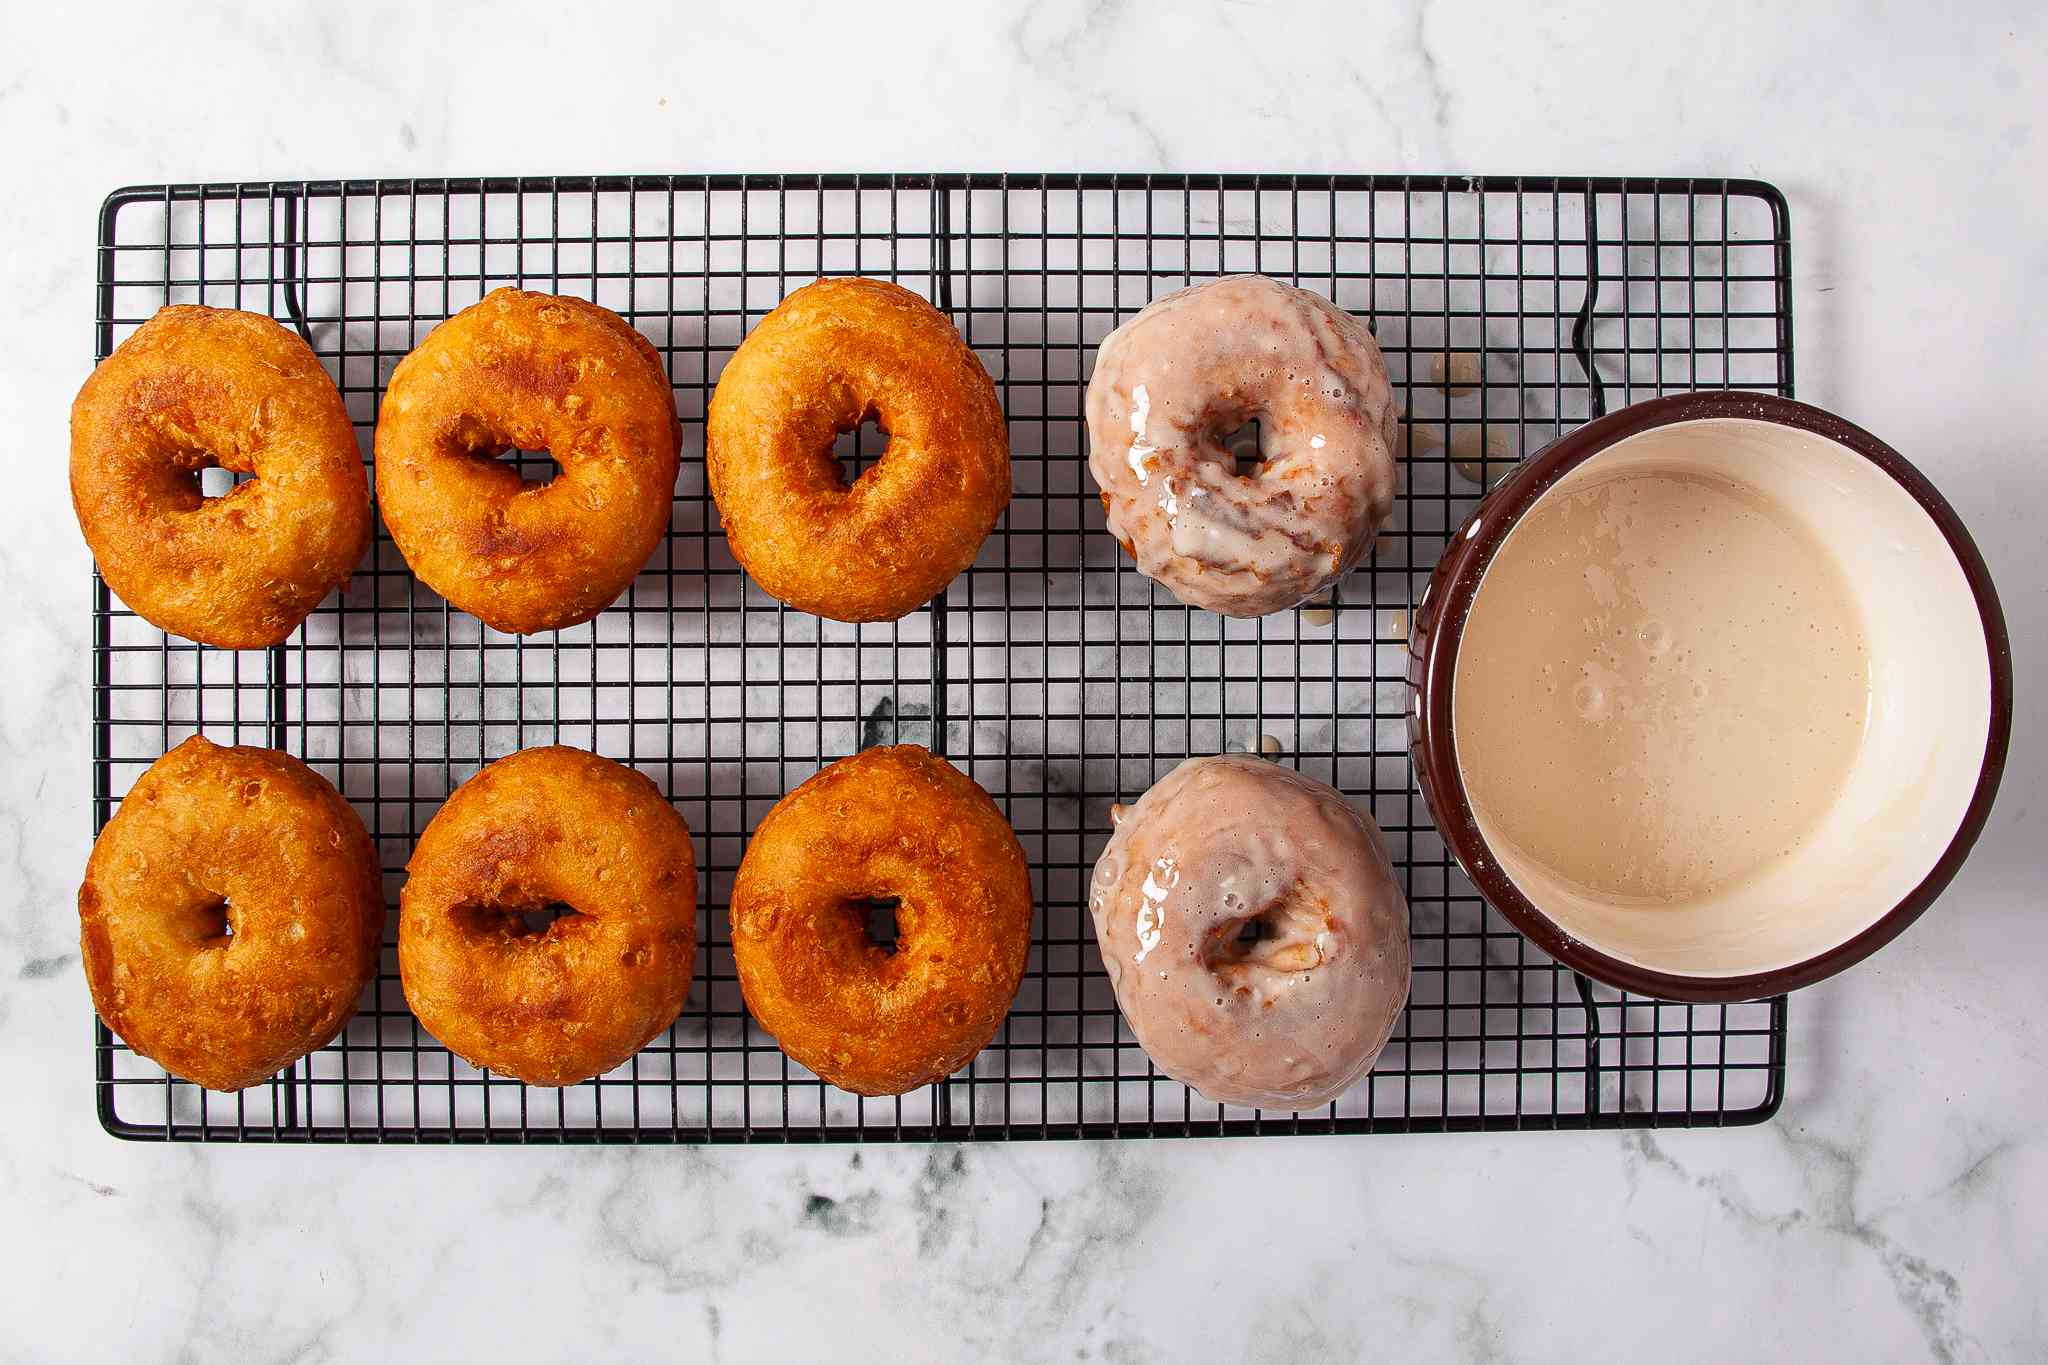 Doughnuts dipped in maple glaze on a cooling rack